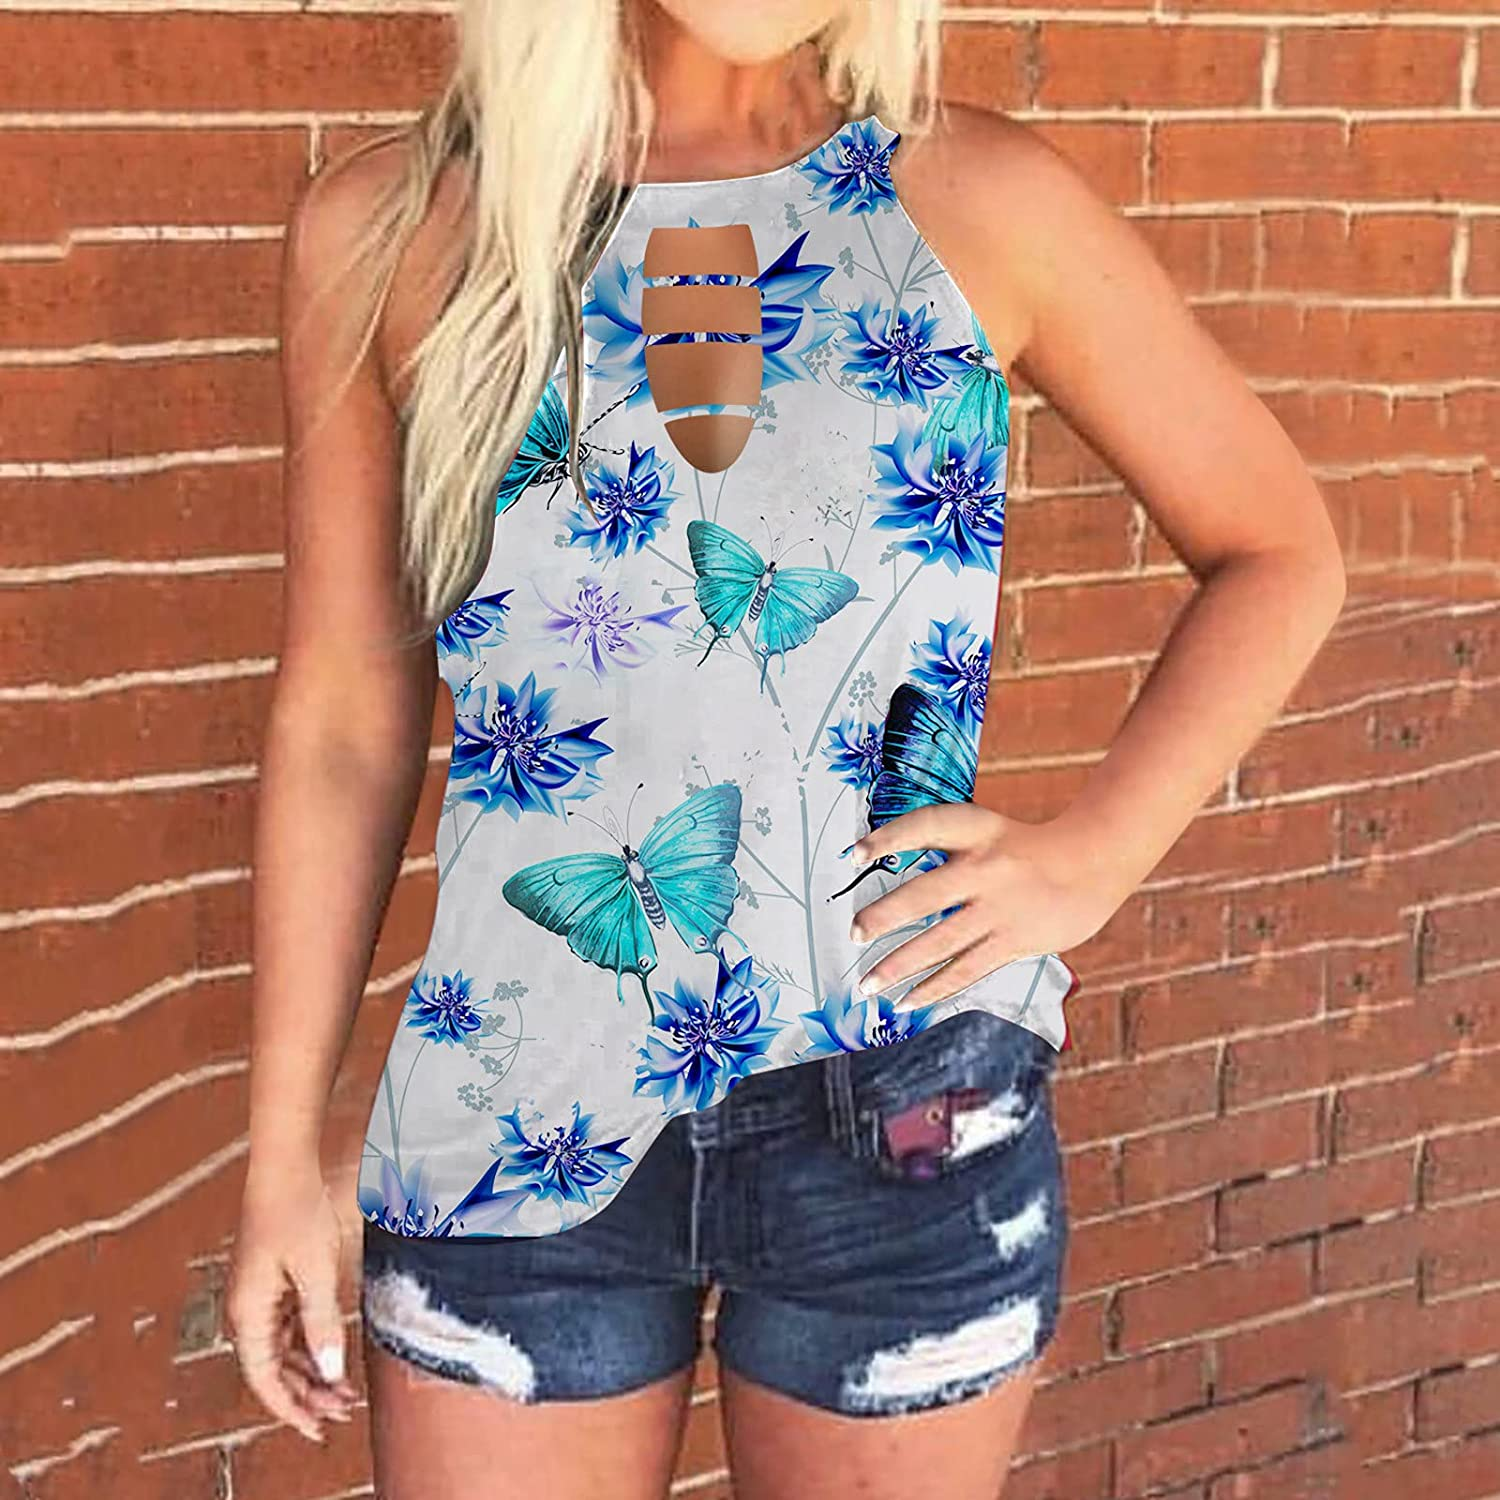 Aukbays Summer Tank Tops for Women, Casual Sleeveless Butterfly Print Loose Fit Cut Out Tank Tees Shirts Vest Crop Tops